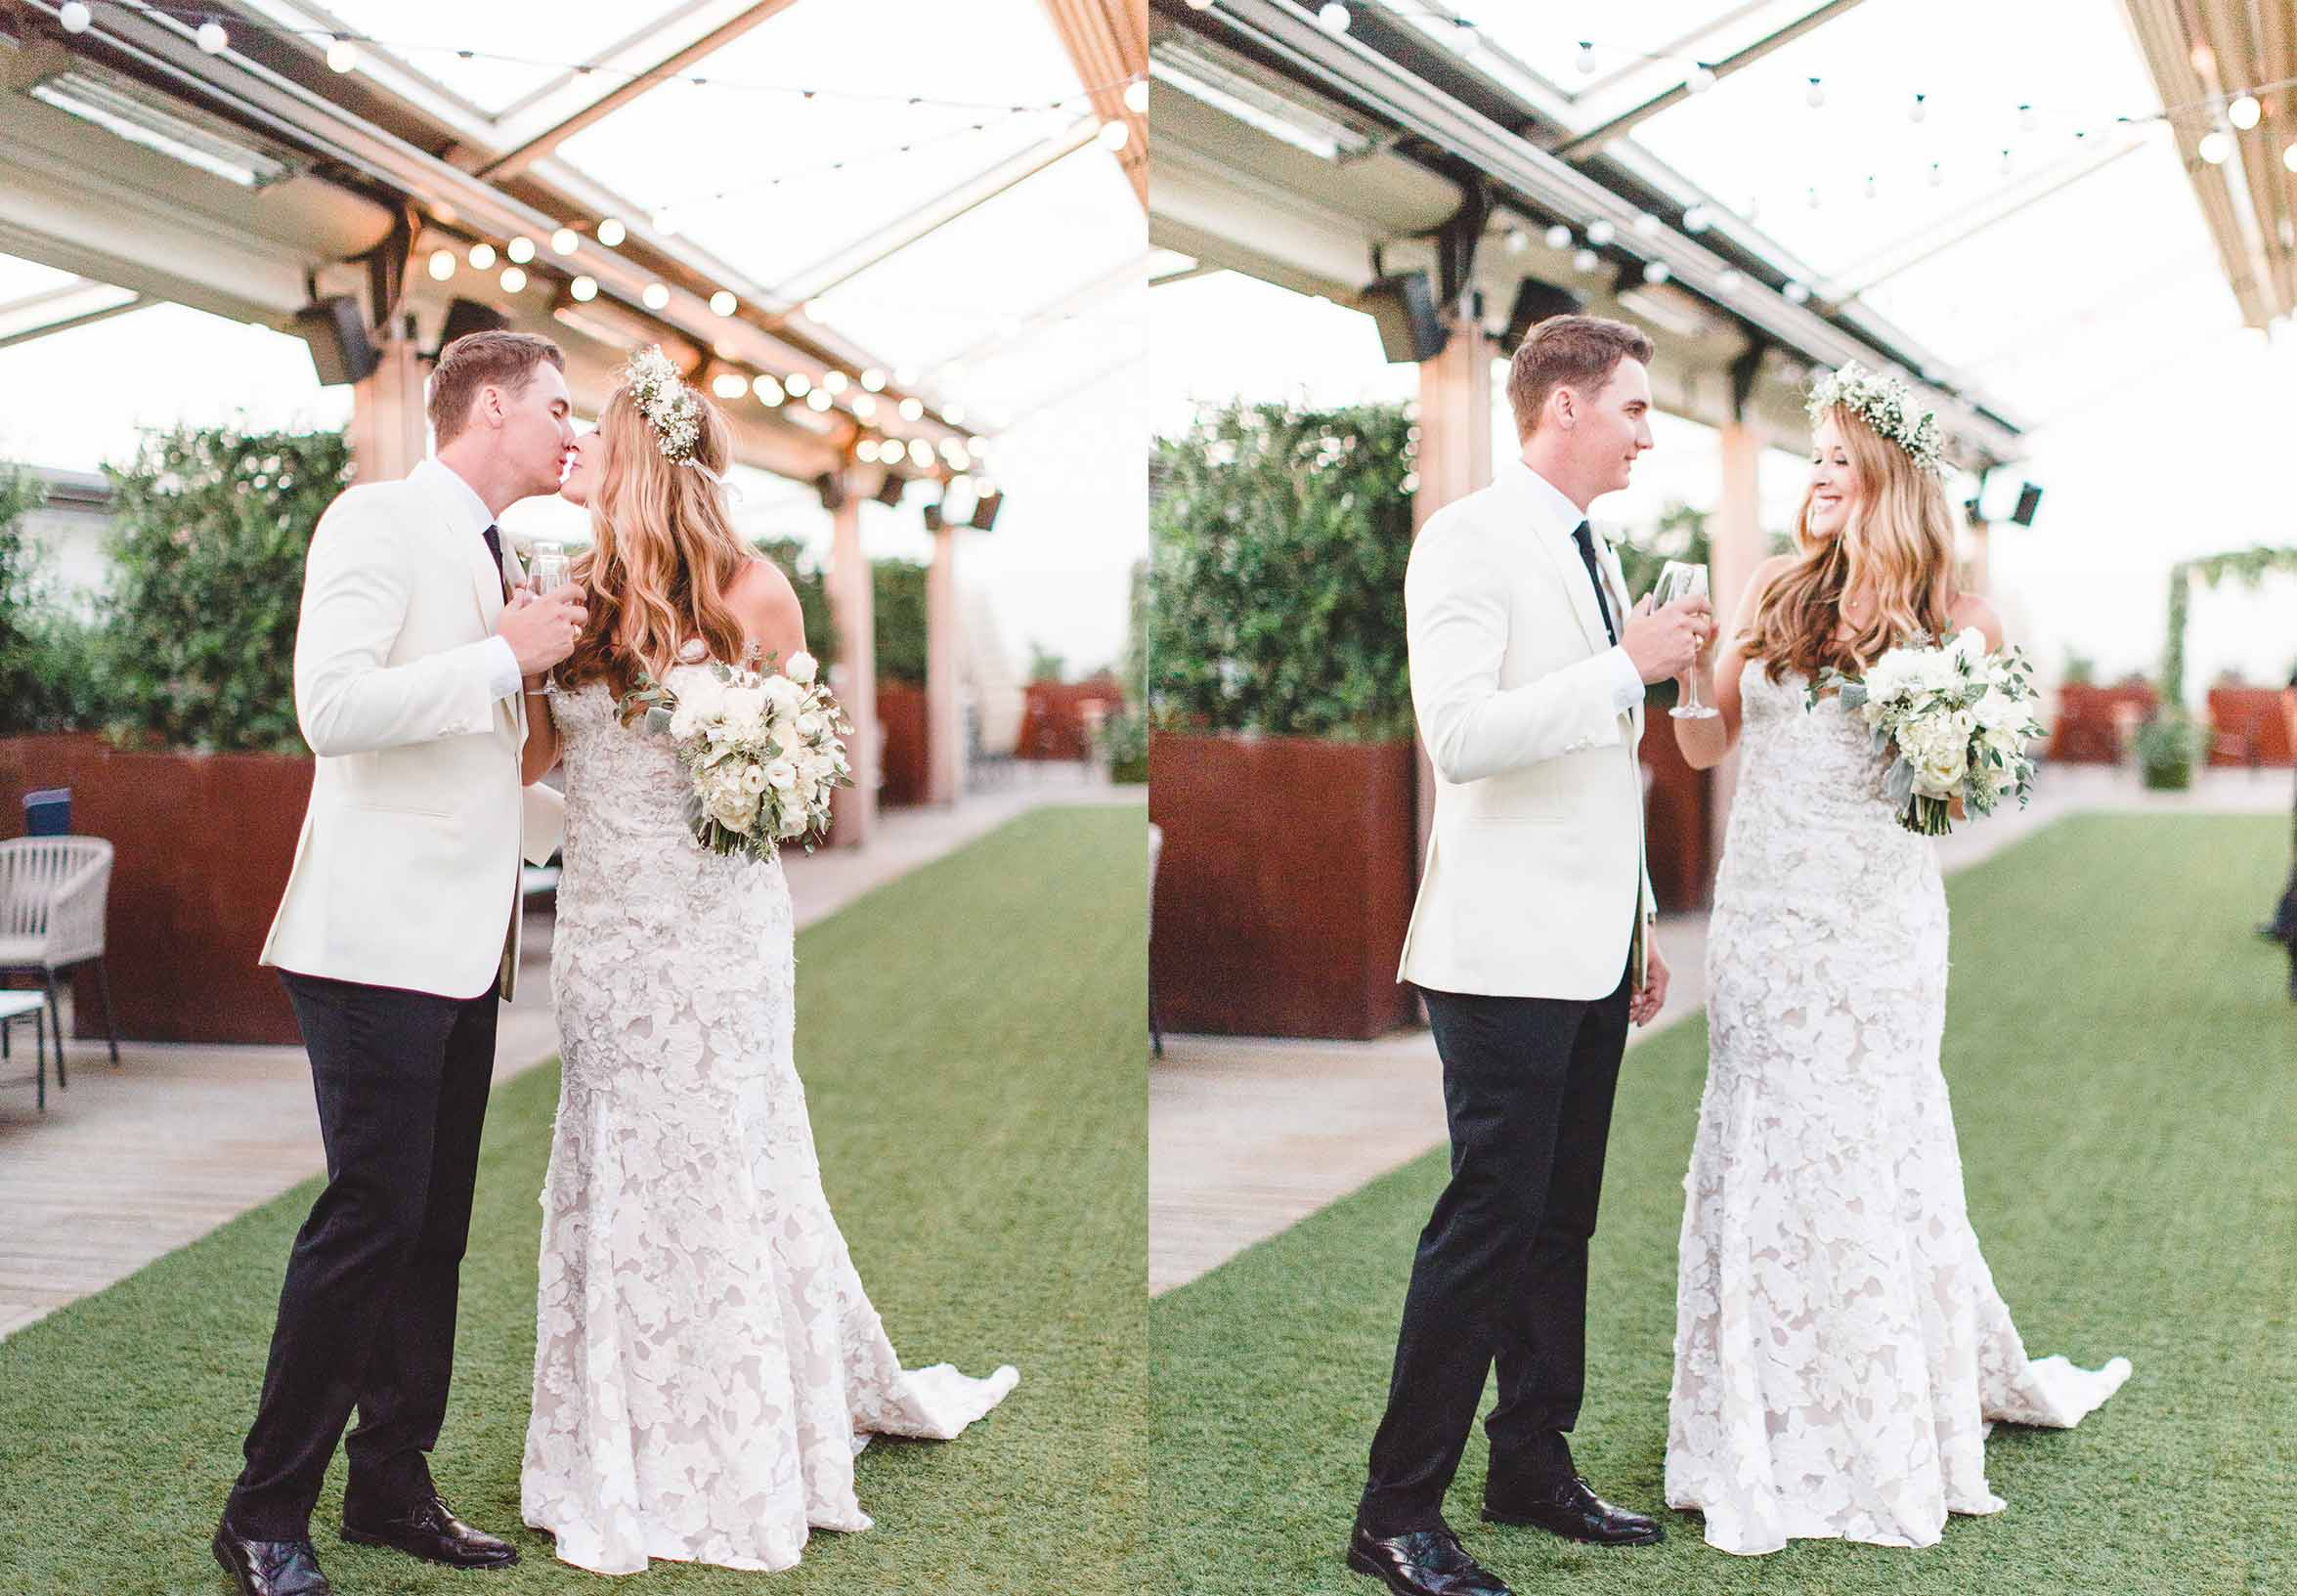 Renaissance Dallas Hotel wedding -- Renaissance Dallas Hotel rooftop -- wedding at Renaissance Dallas Hotel -- Dallas fashion blogger Cameron Proffitt has romantic Dallas rooftop wedding with mix-and-match bridesmaids dresses and neutral color palette -- Dallas Texas wedding venues